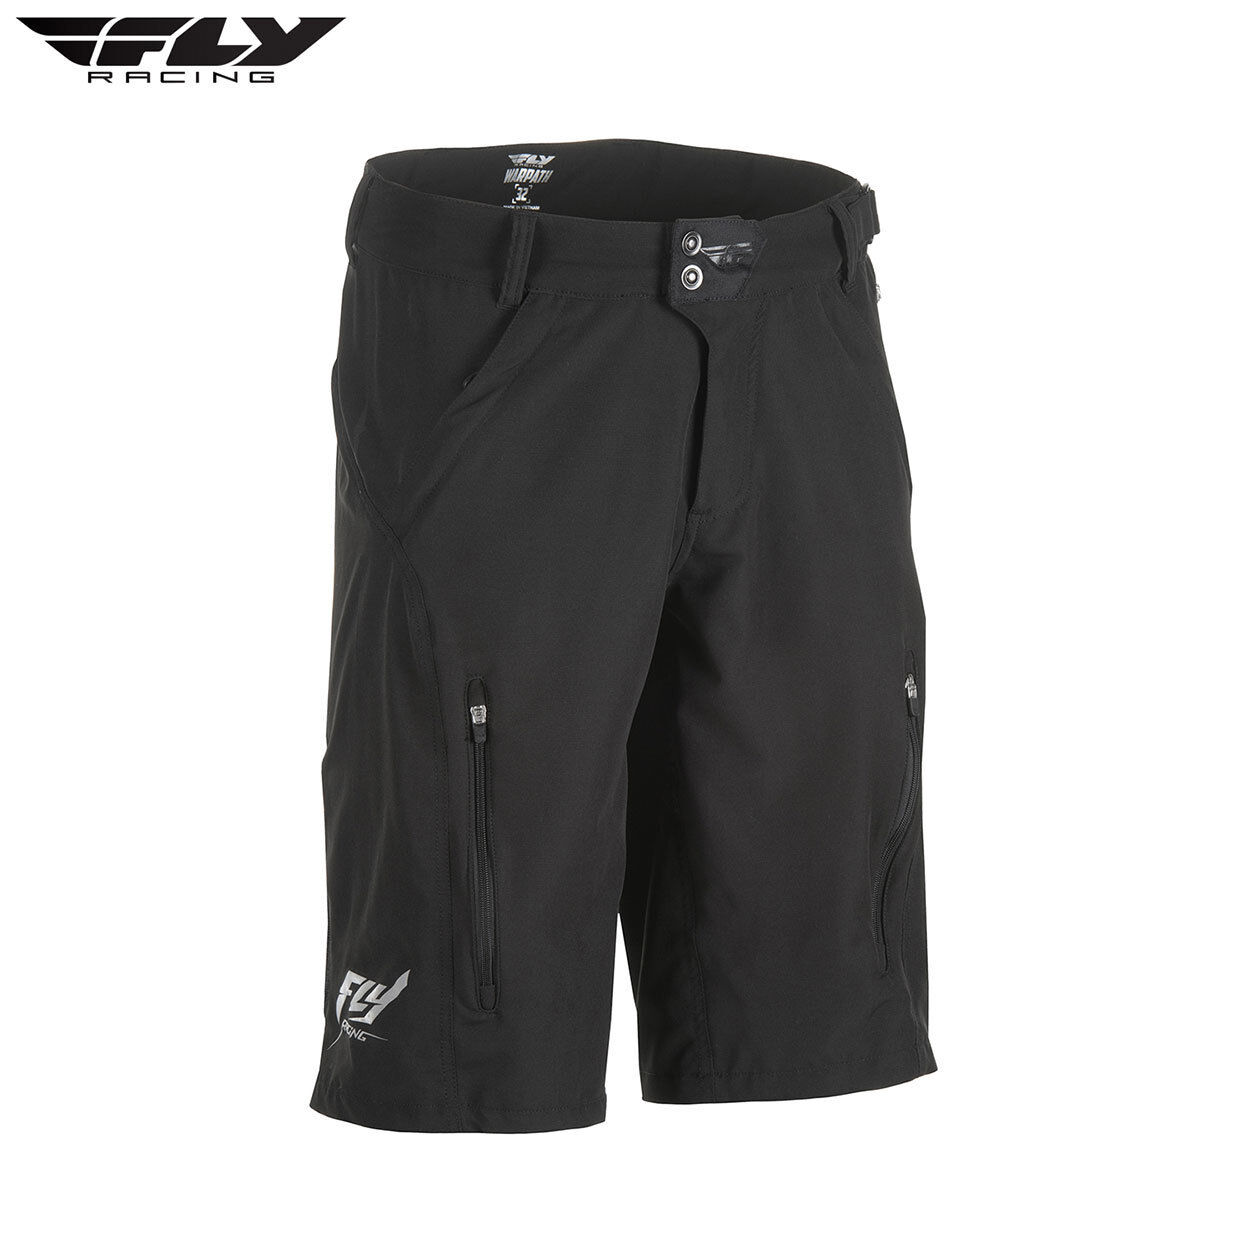 Volar Bicicleta Warpath Adulto Transpirable Shorts Elásticos MTB Montaña